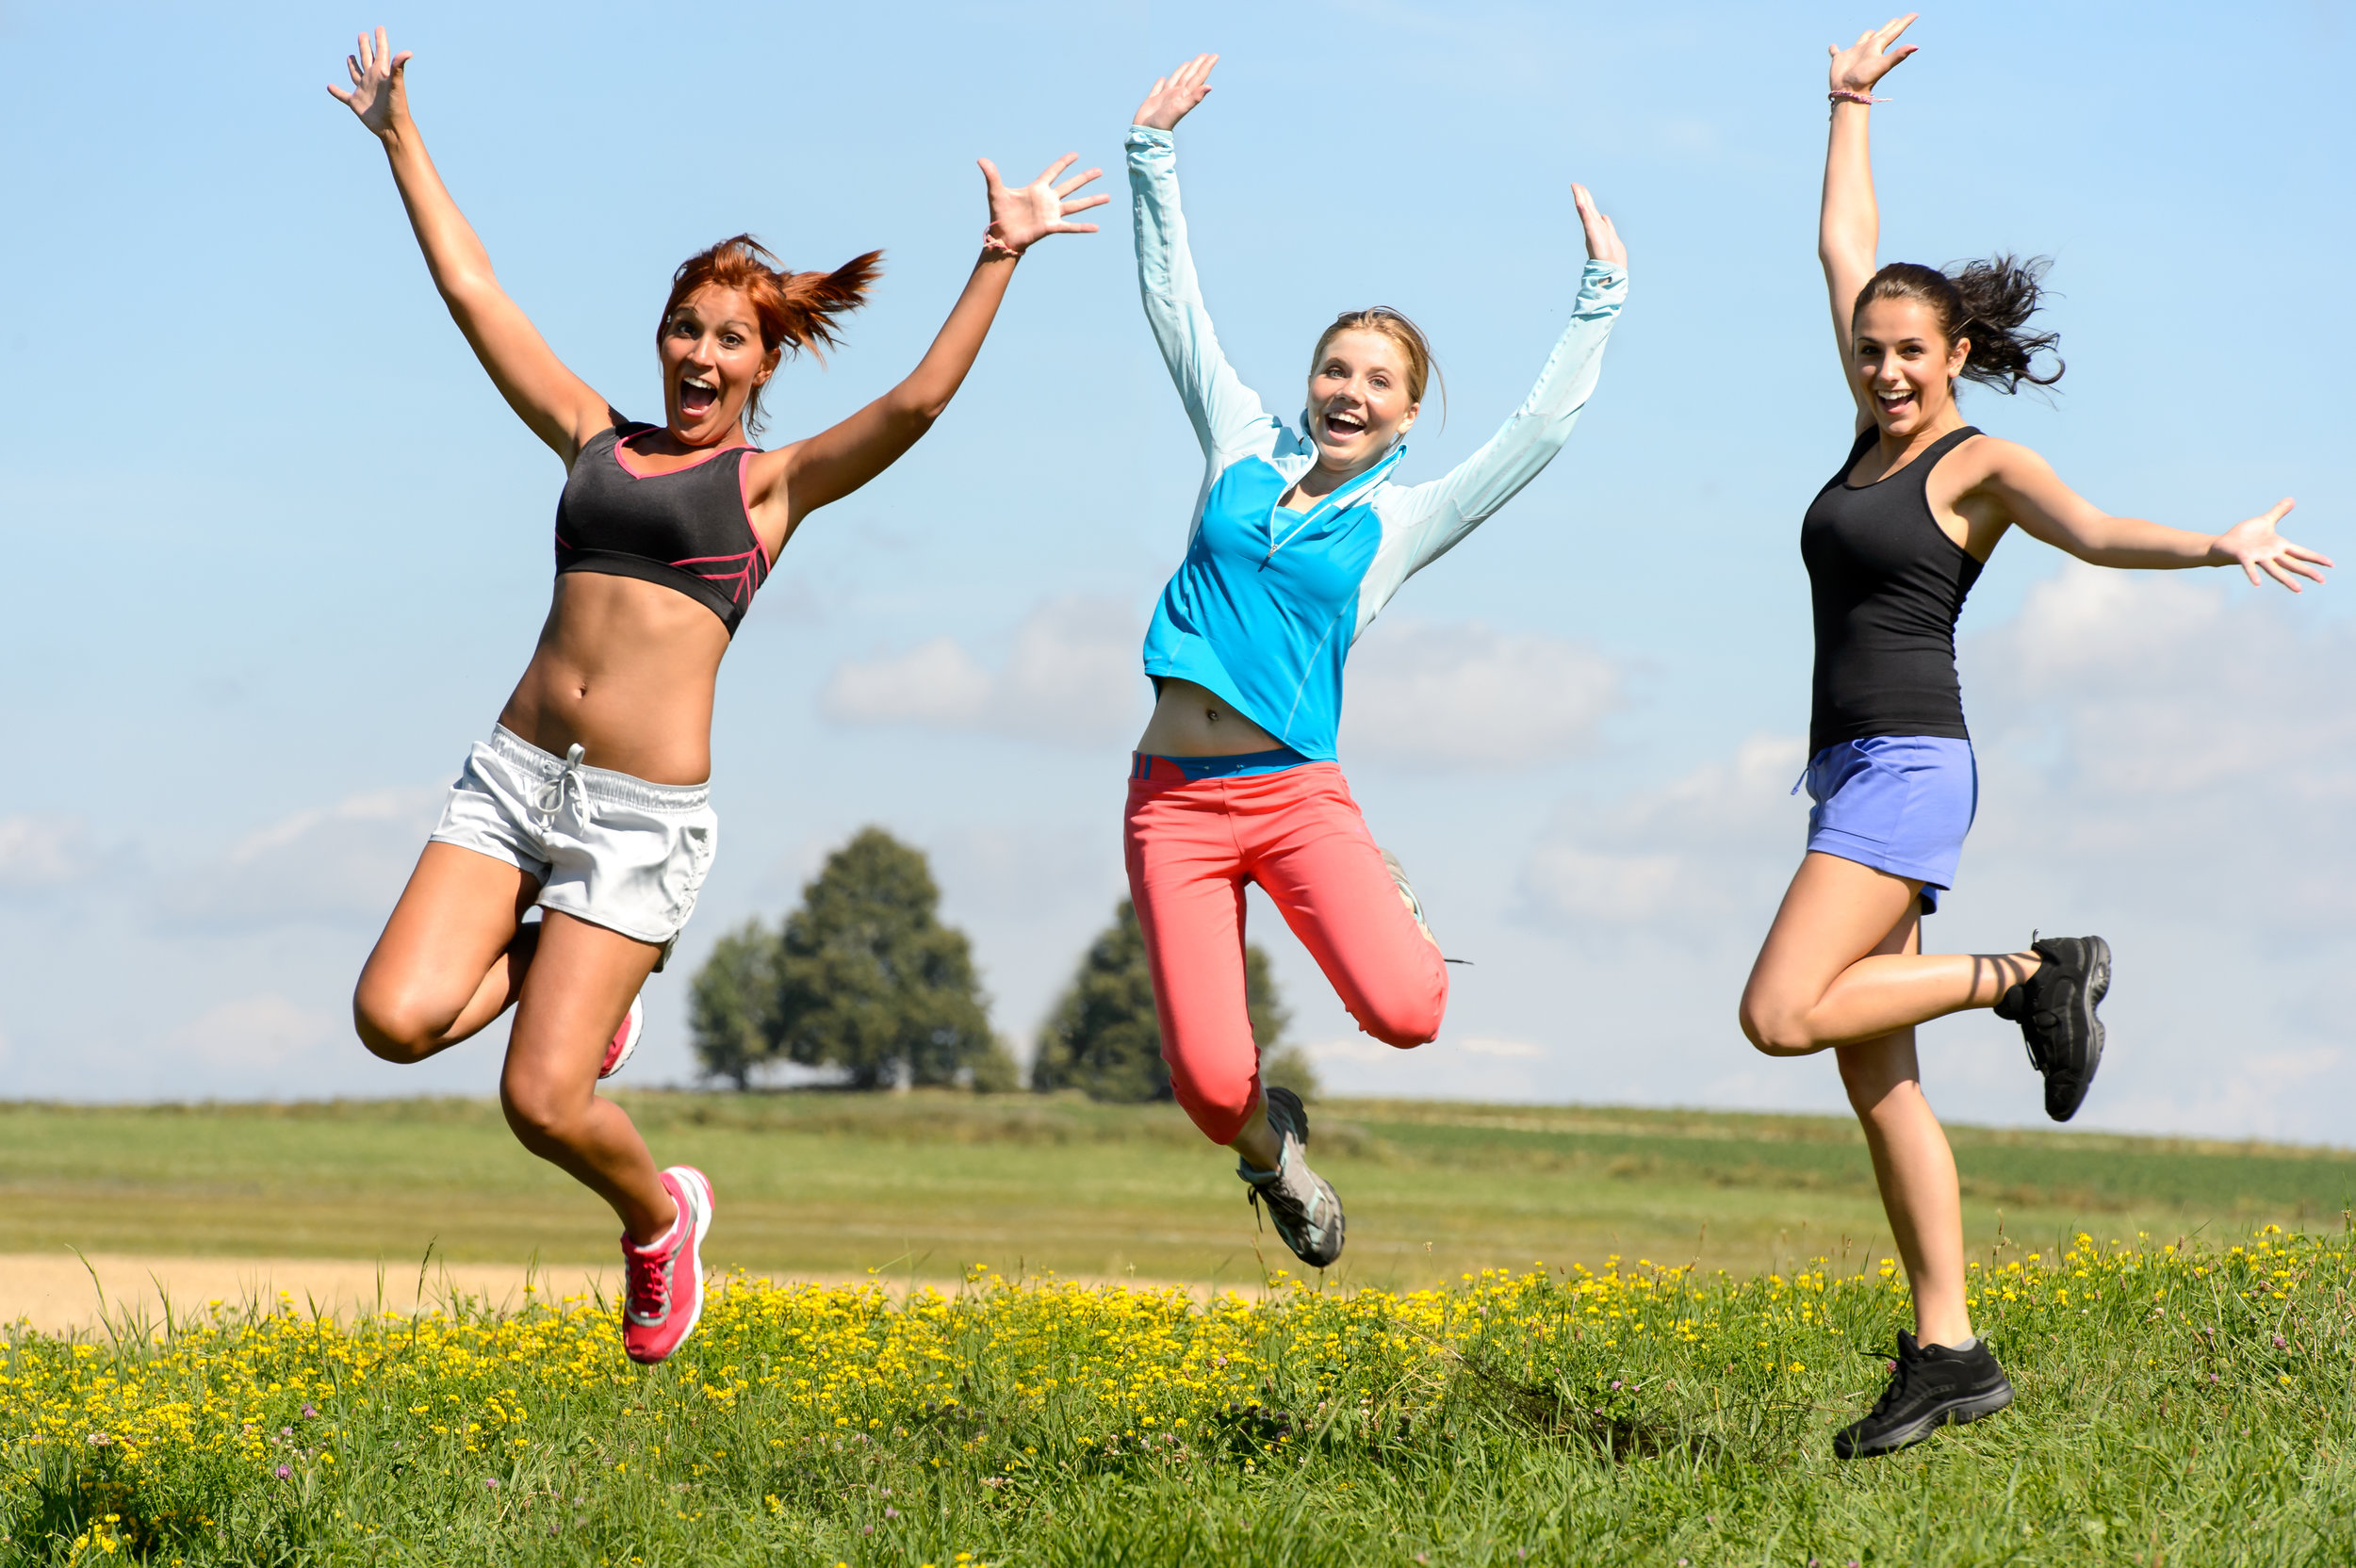 Choosing a workout we enjoy helps us stay motivated. Photo: Graphic Stock